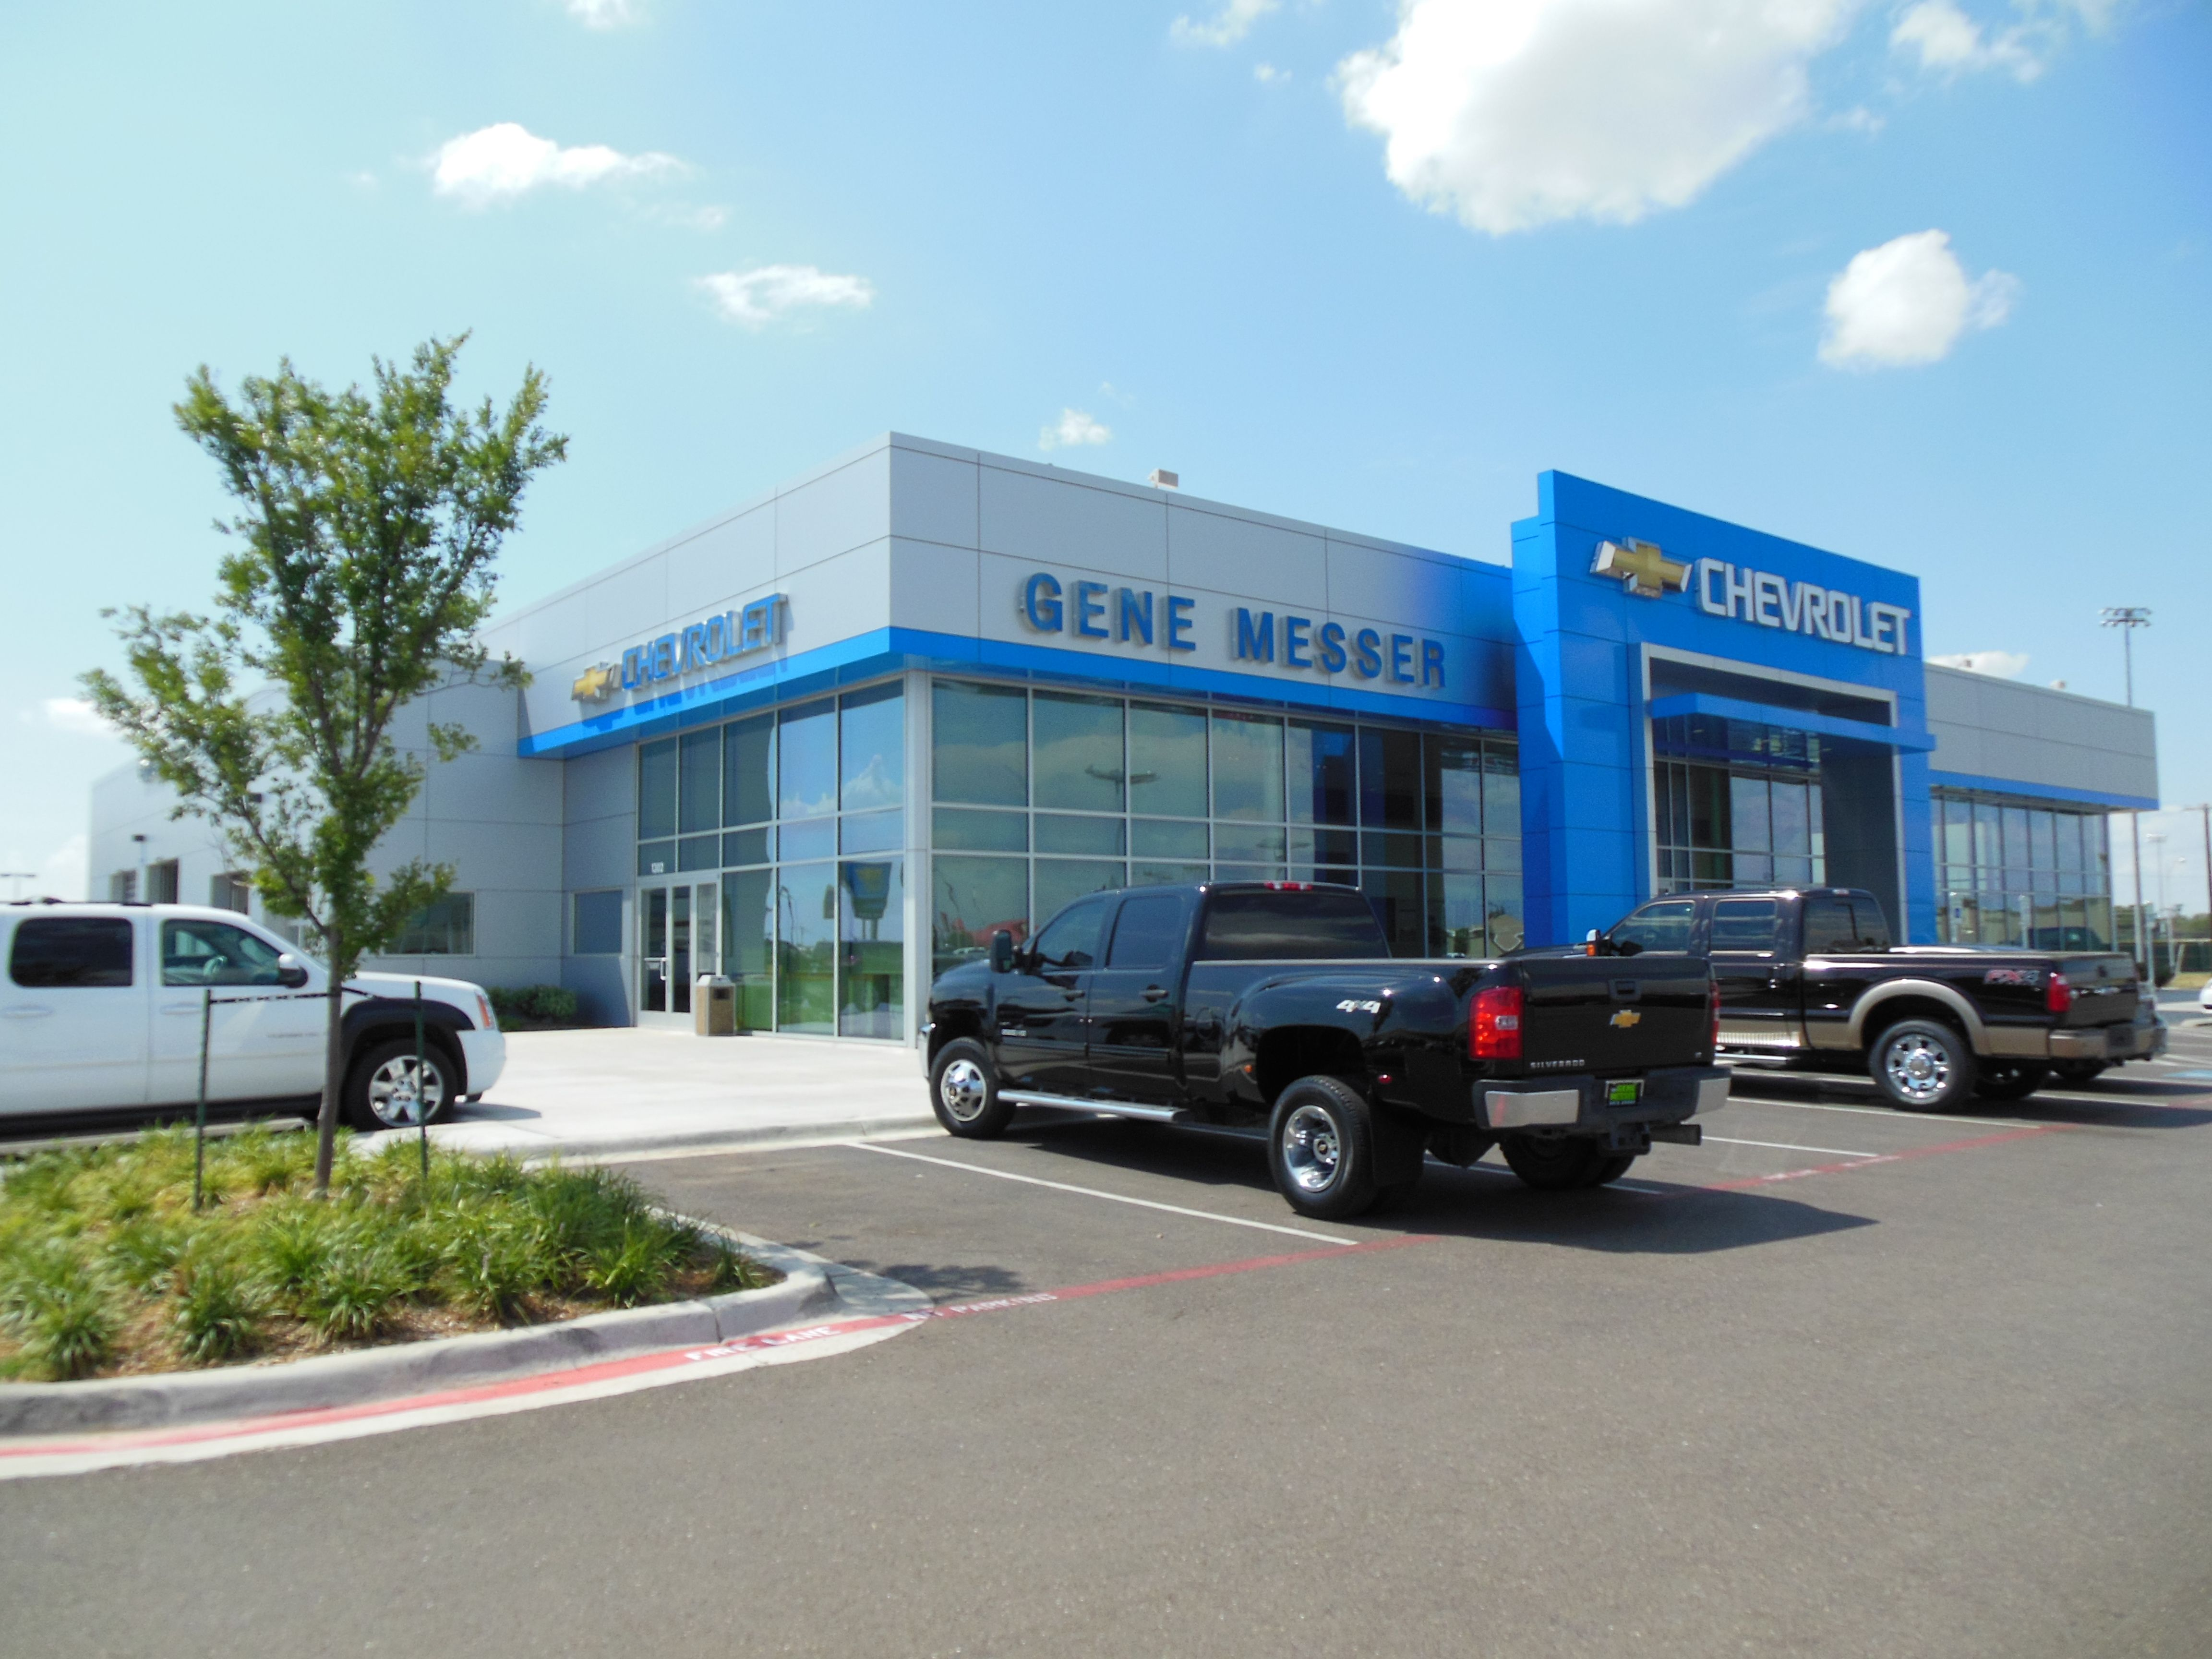 Good Welcome To Our Home! Gene Messer Chevrolet  Lubbock, Texas